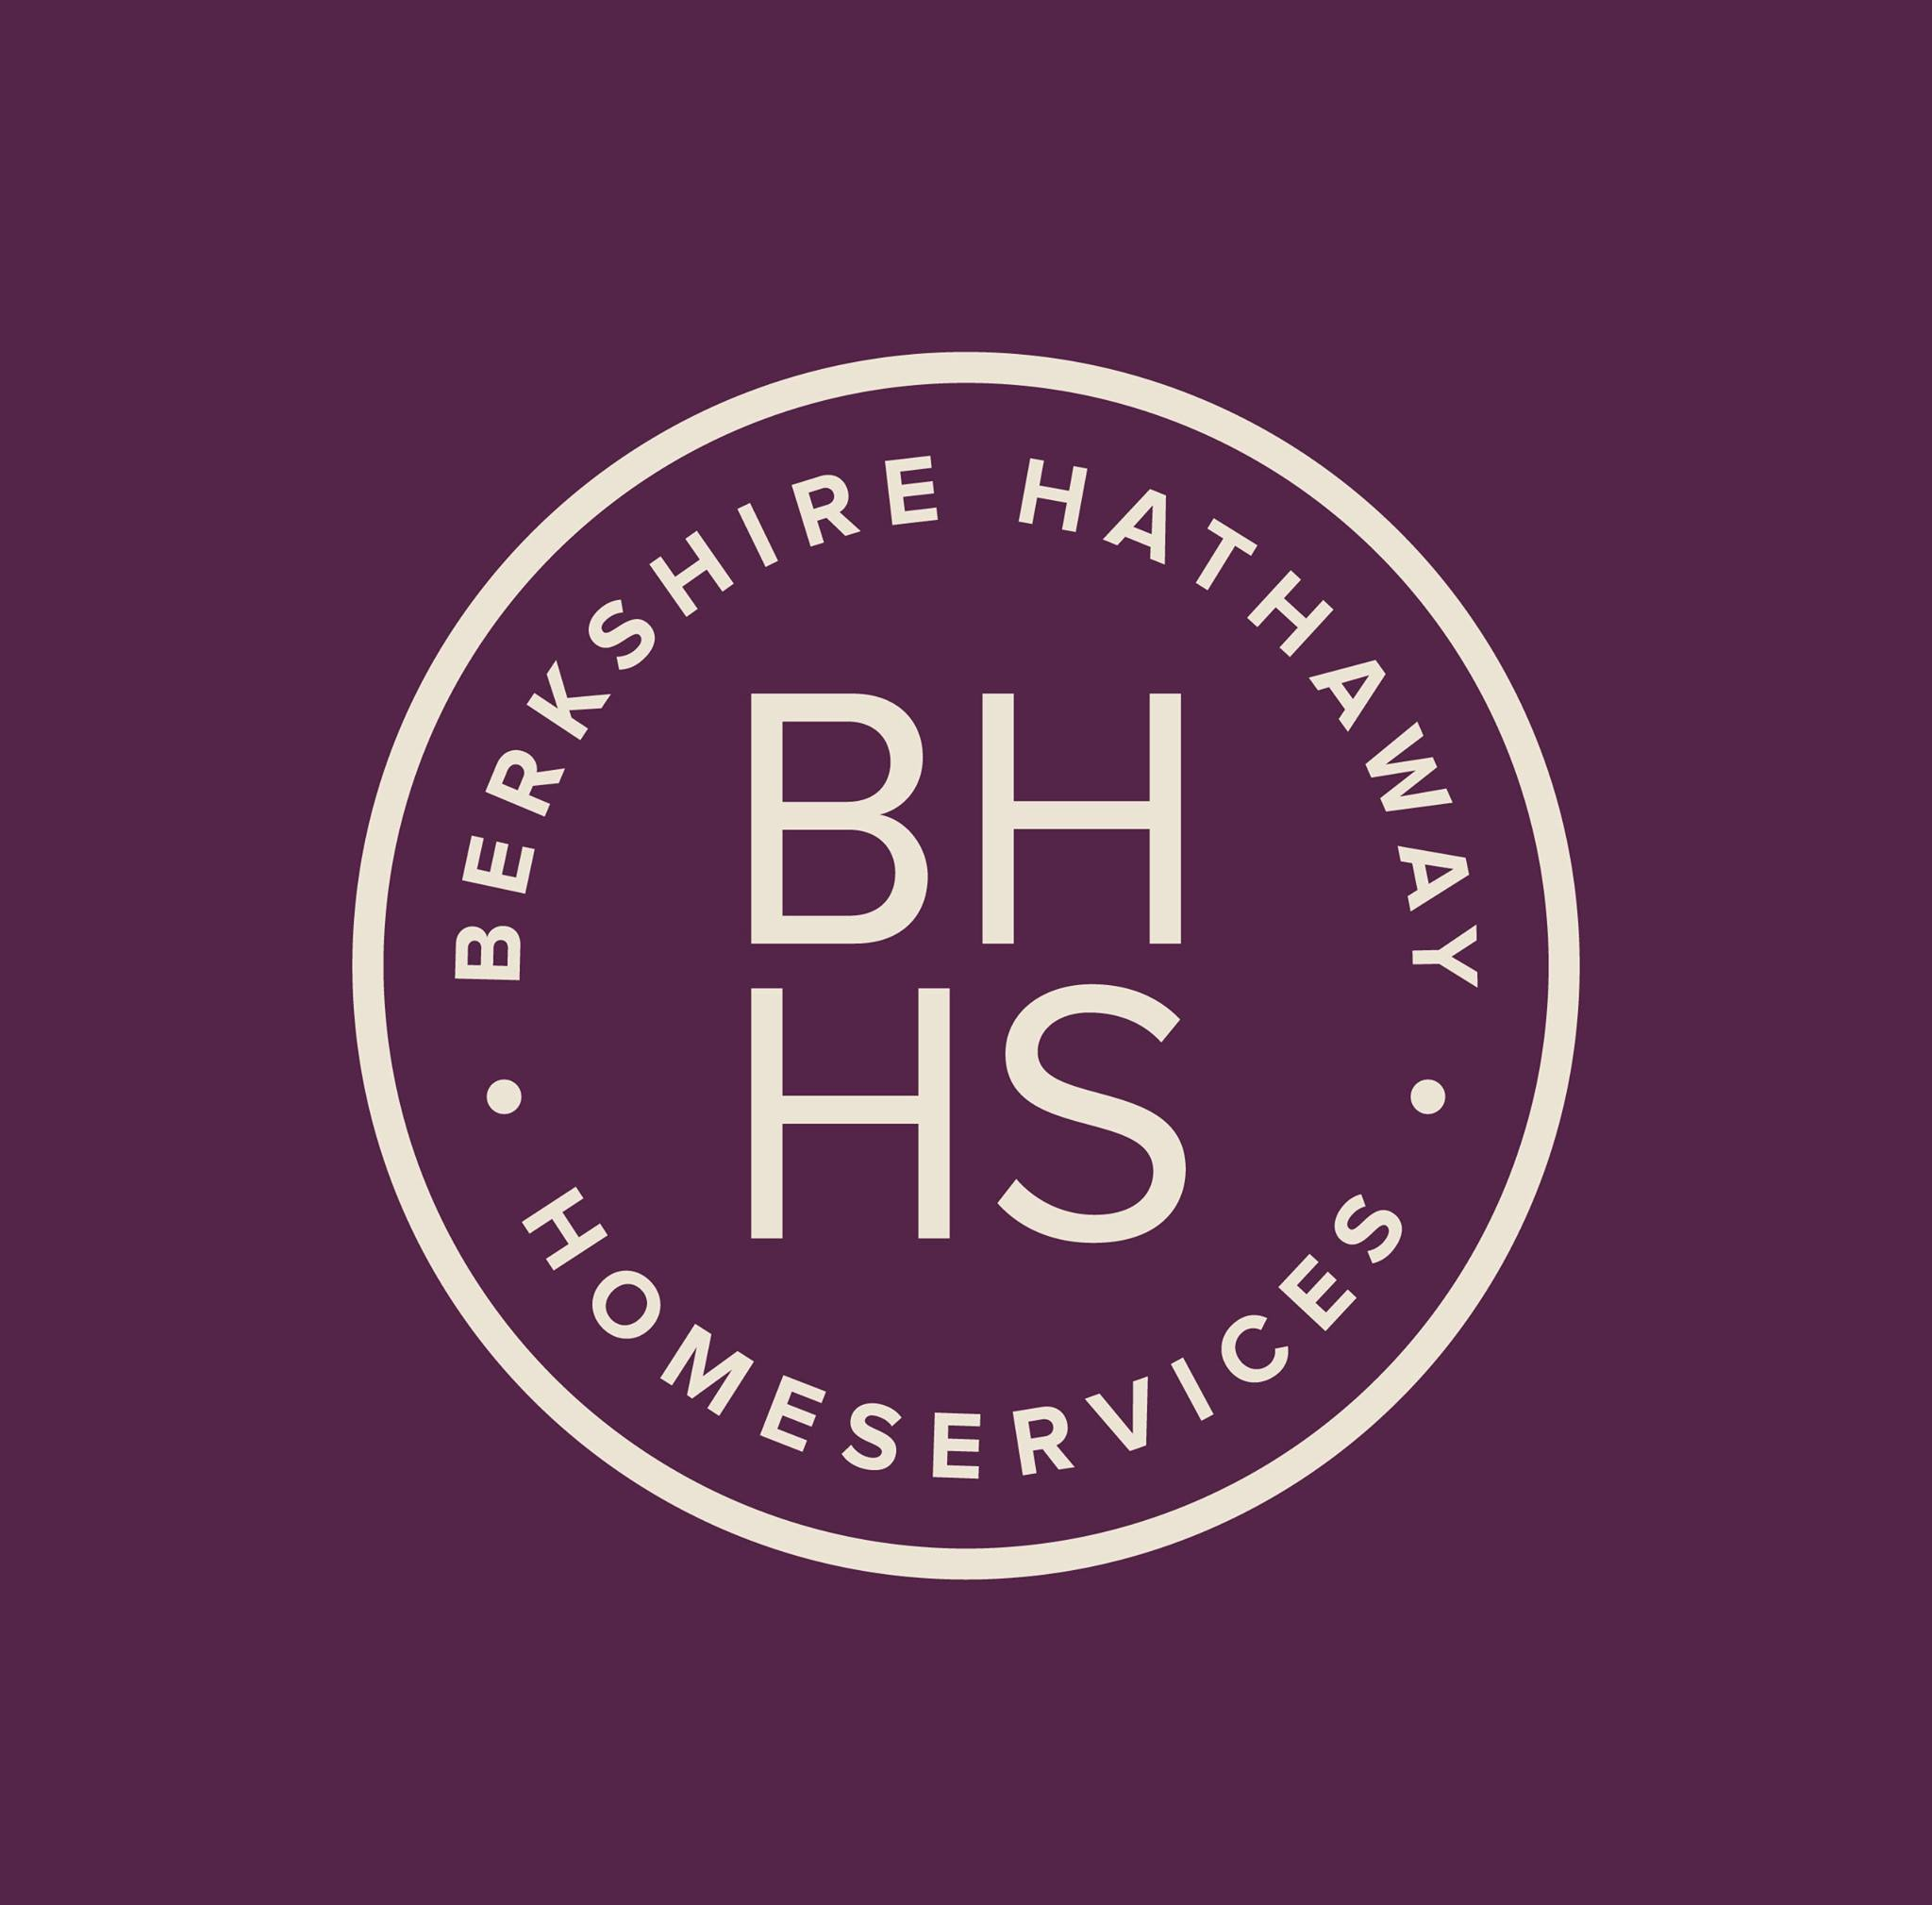 how well has berkshire hathaway performed Berkshire hathaway's class a stock is currently trading at more than $250,000 a share, compared with such ostensibly expensive issues such as google inc , whose share price has yet to crack .